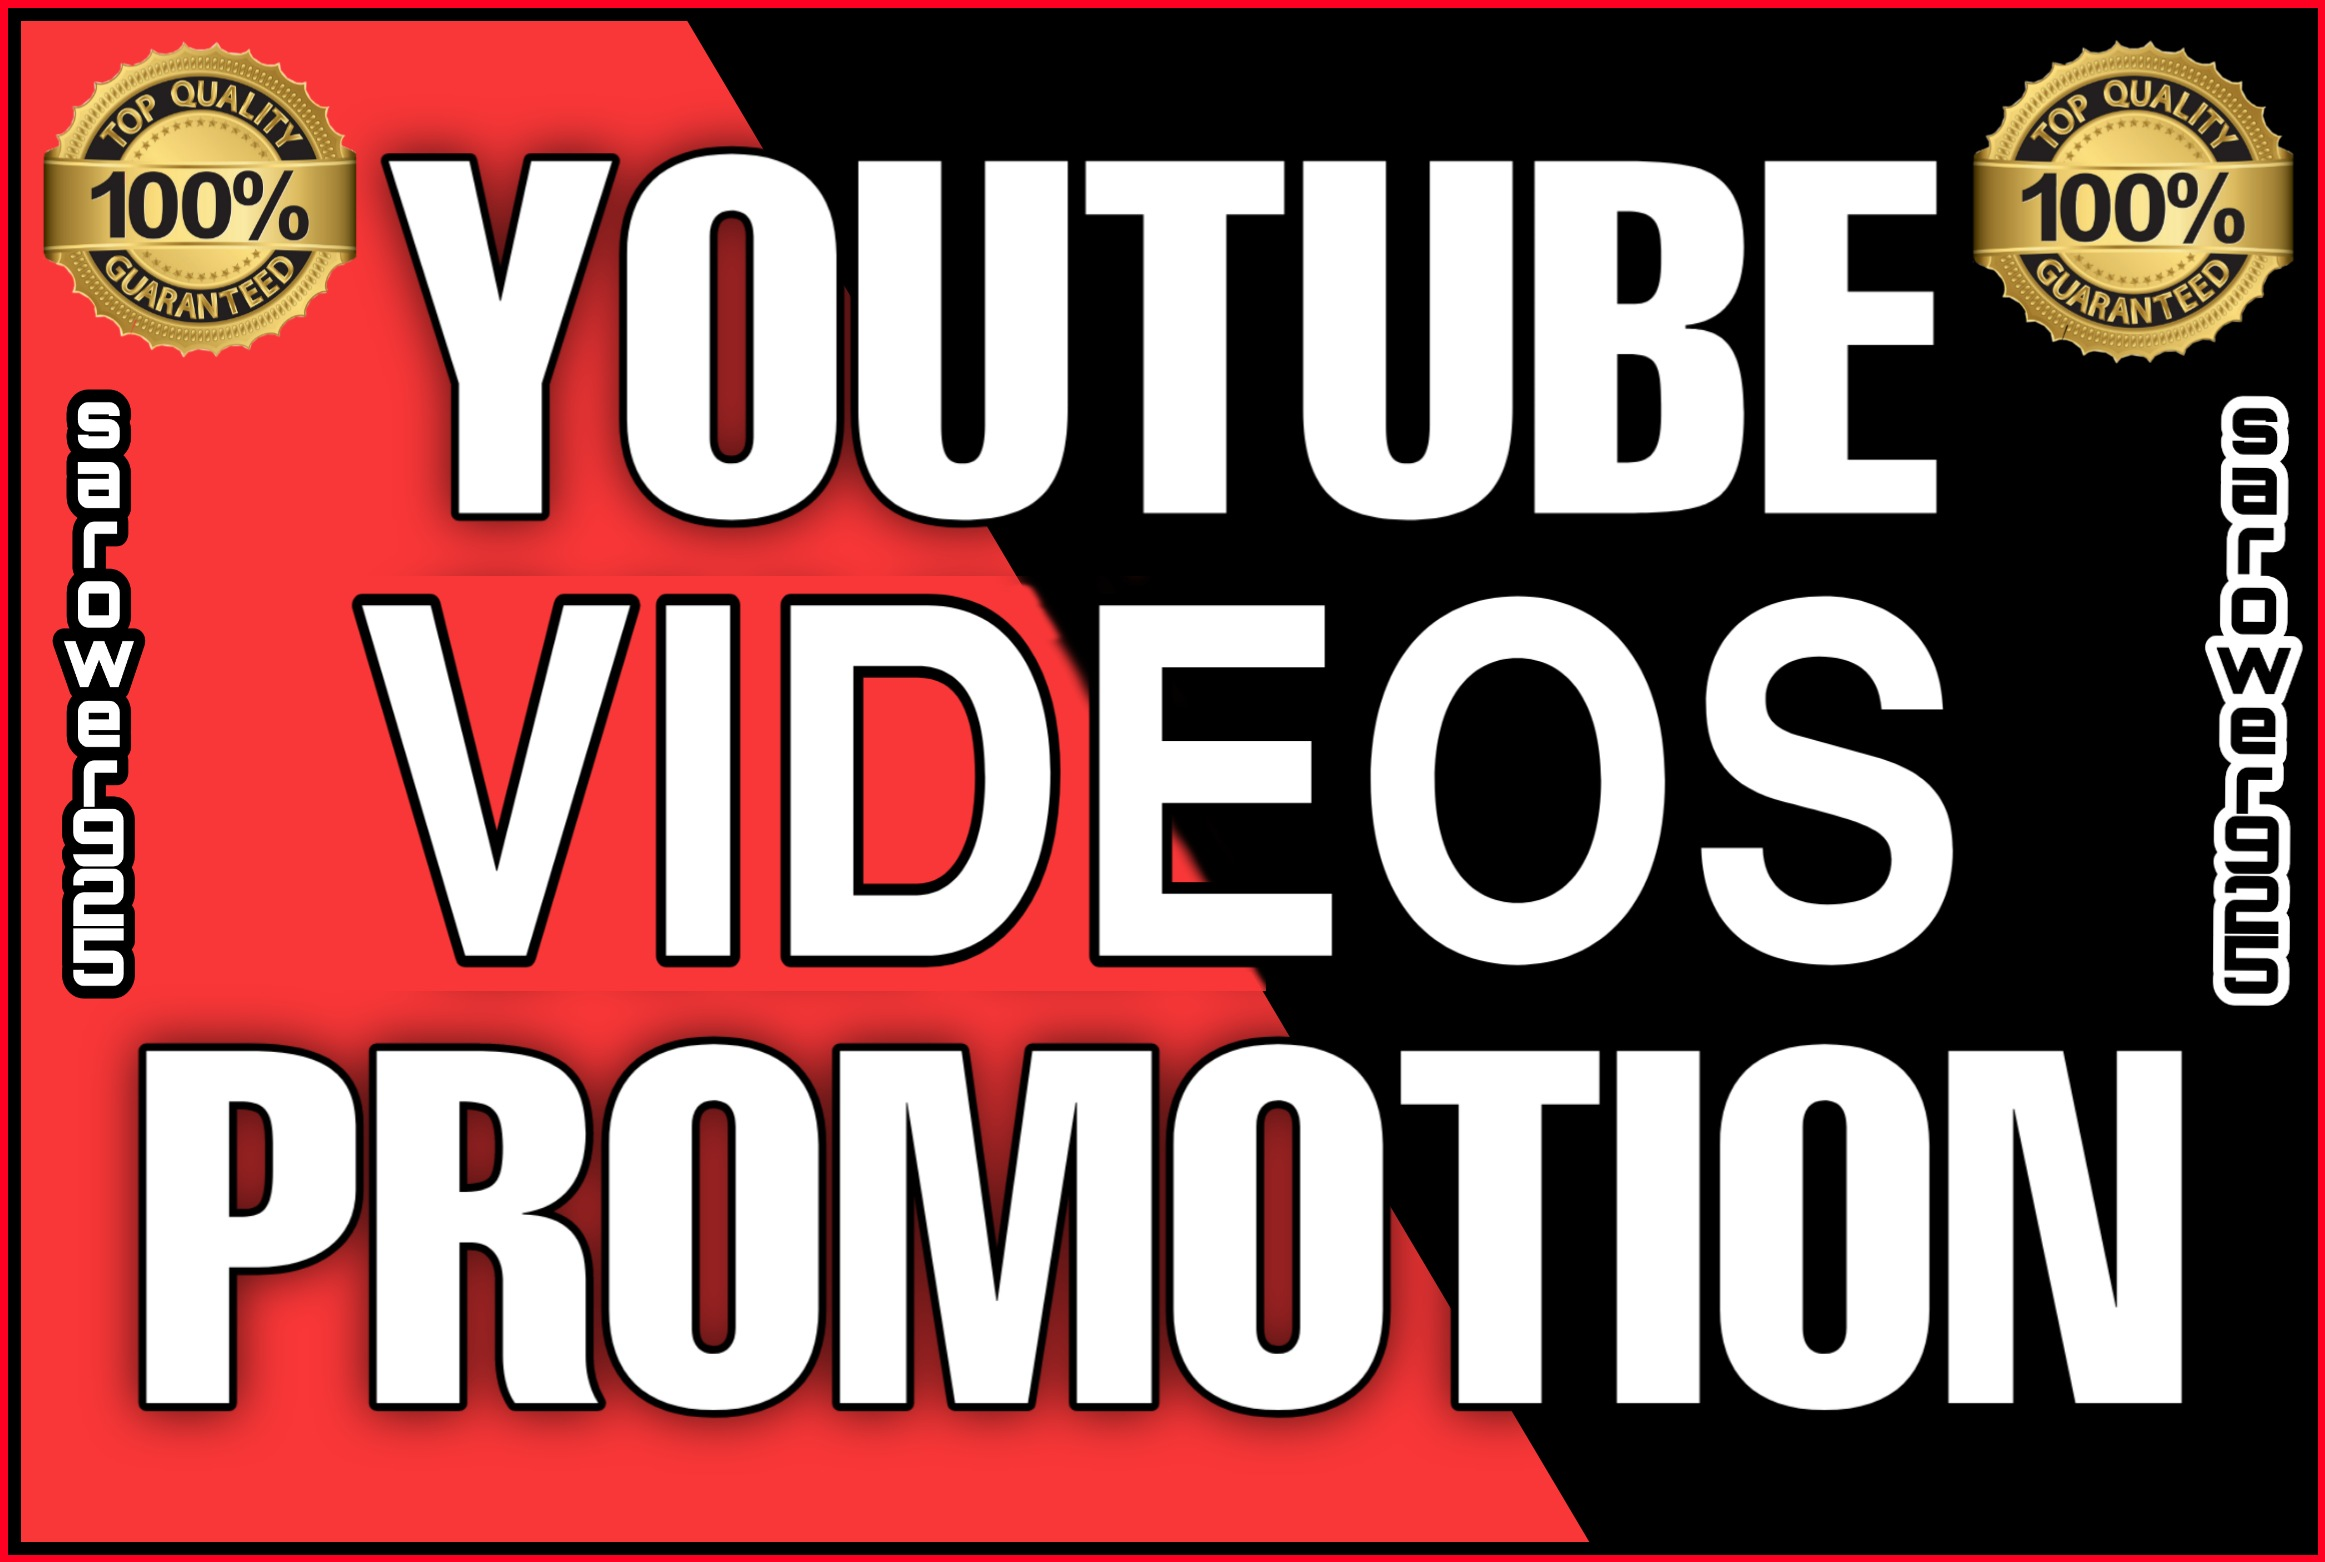 High quality permanent youtube videos promotion & marketing